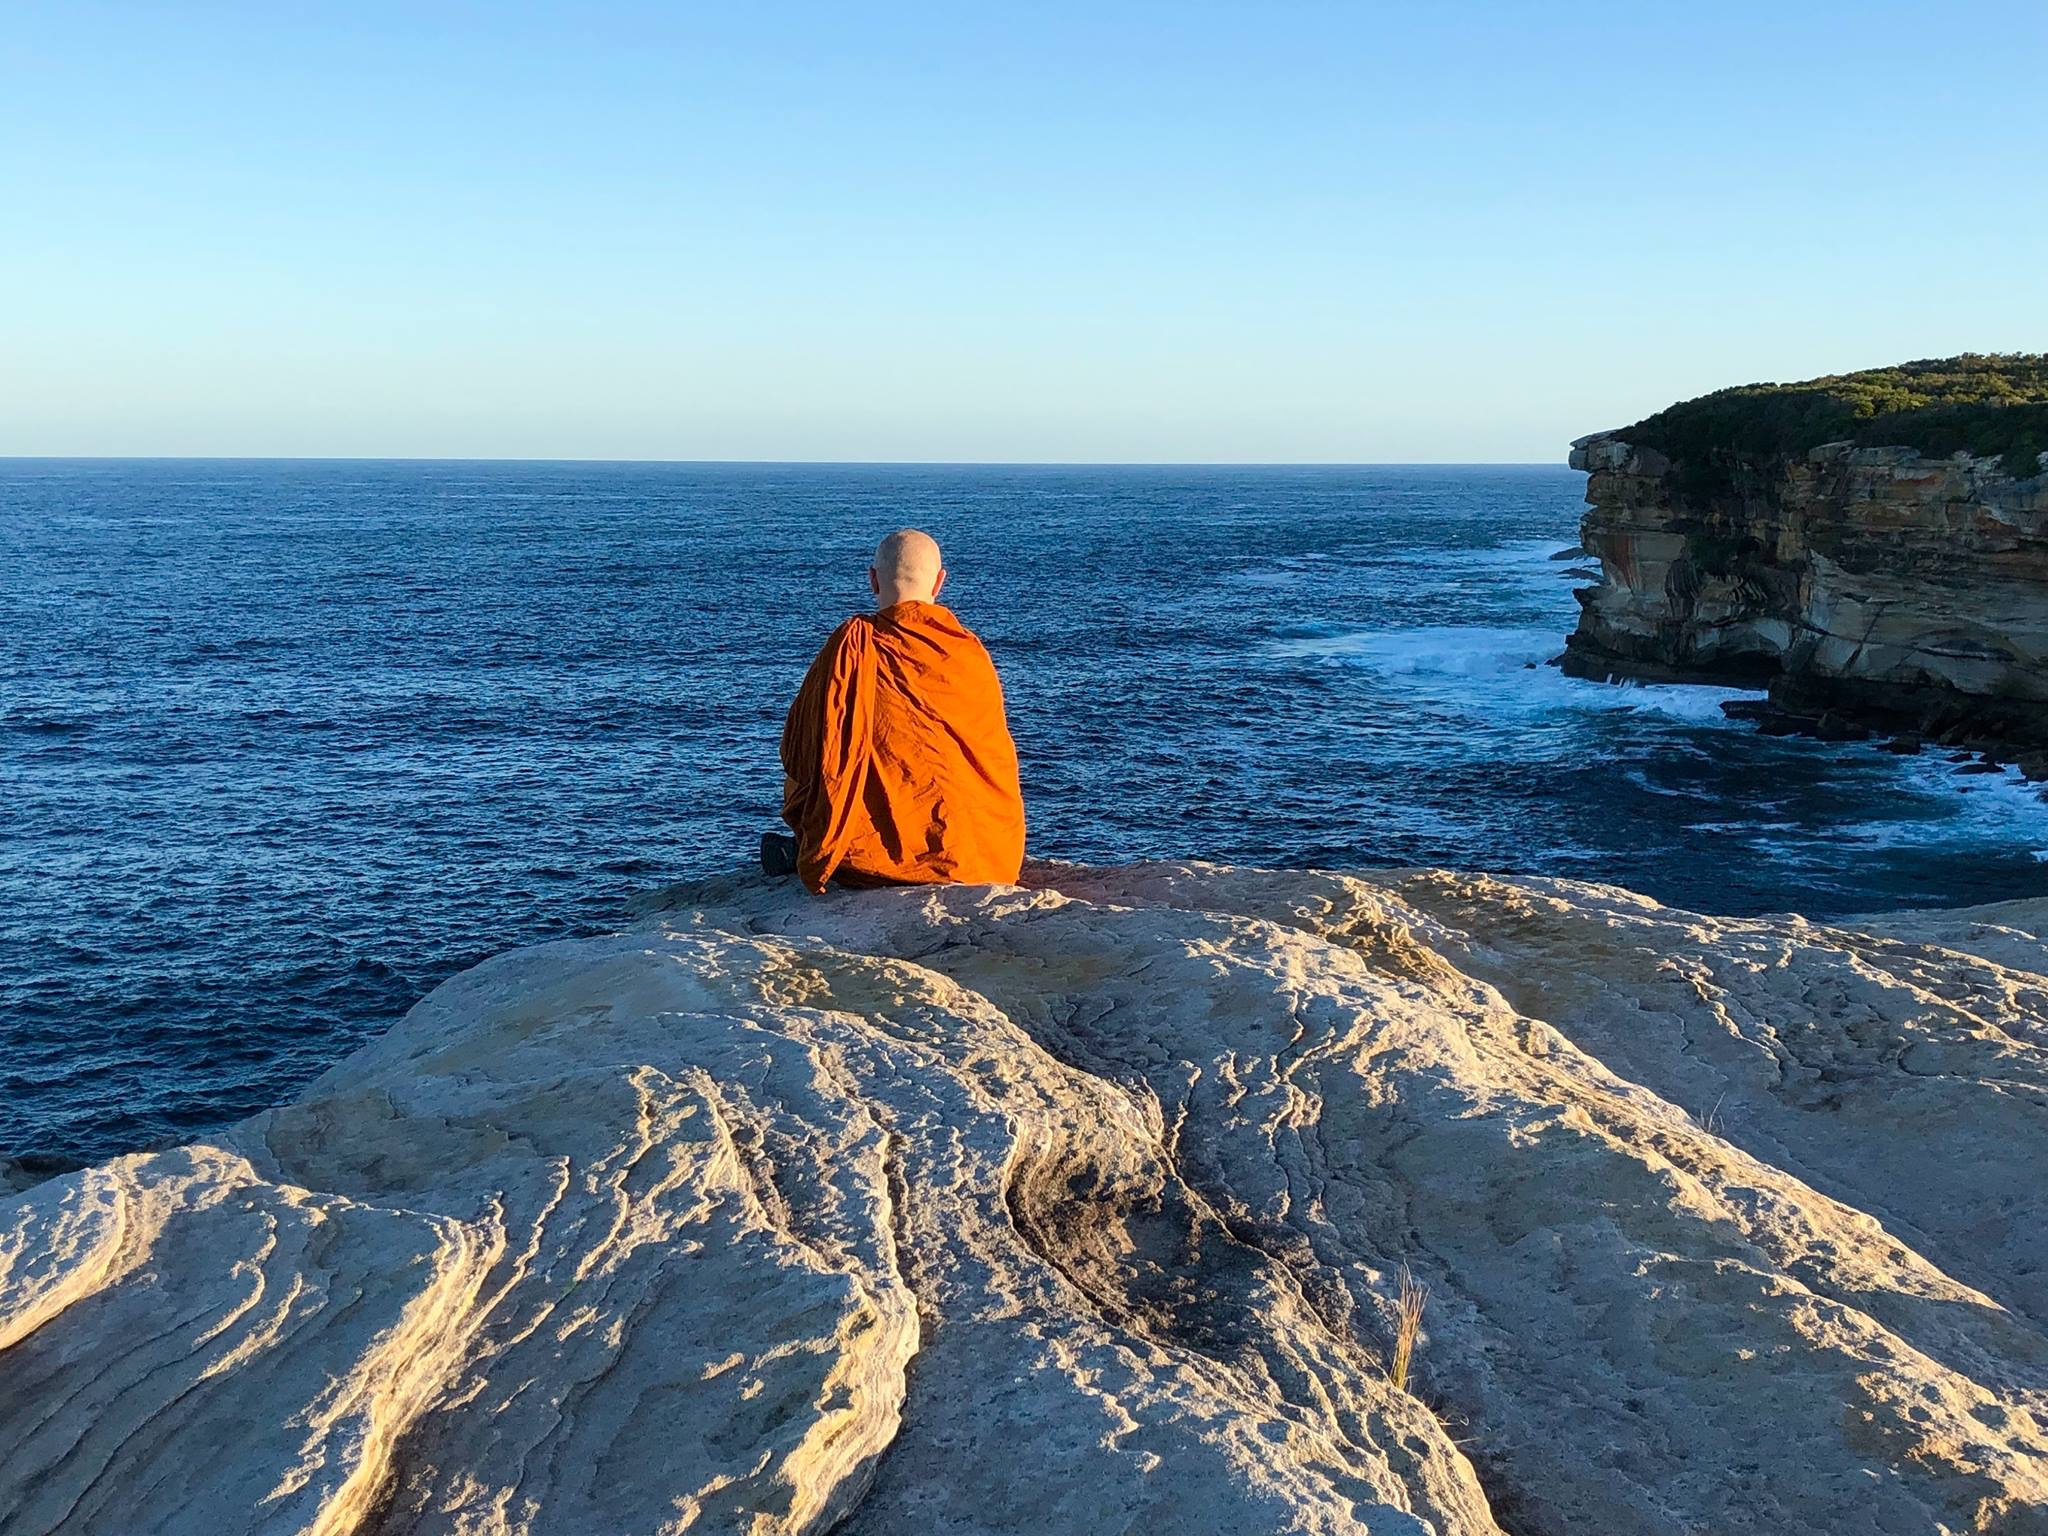 A Buddhist monk sits on a rocky cliff top looking out to the ocean, with horizon and blue sky.